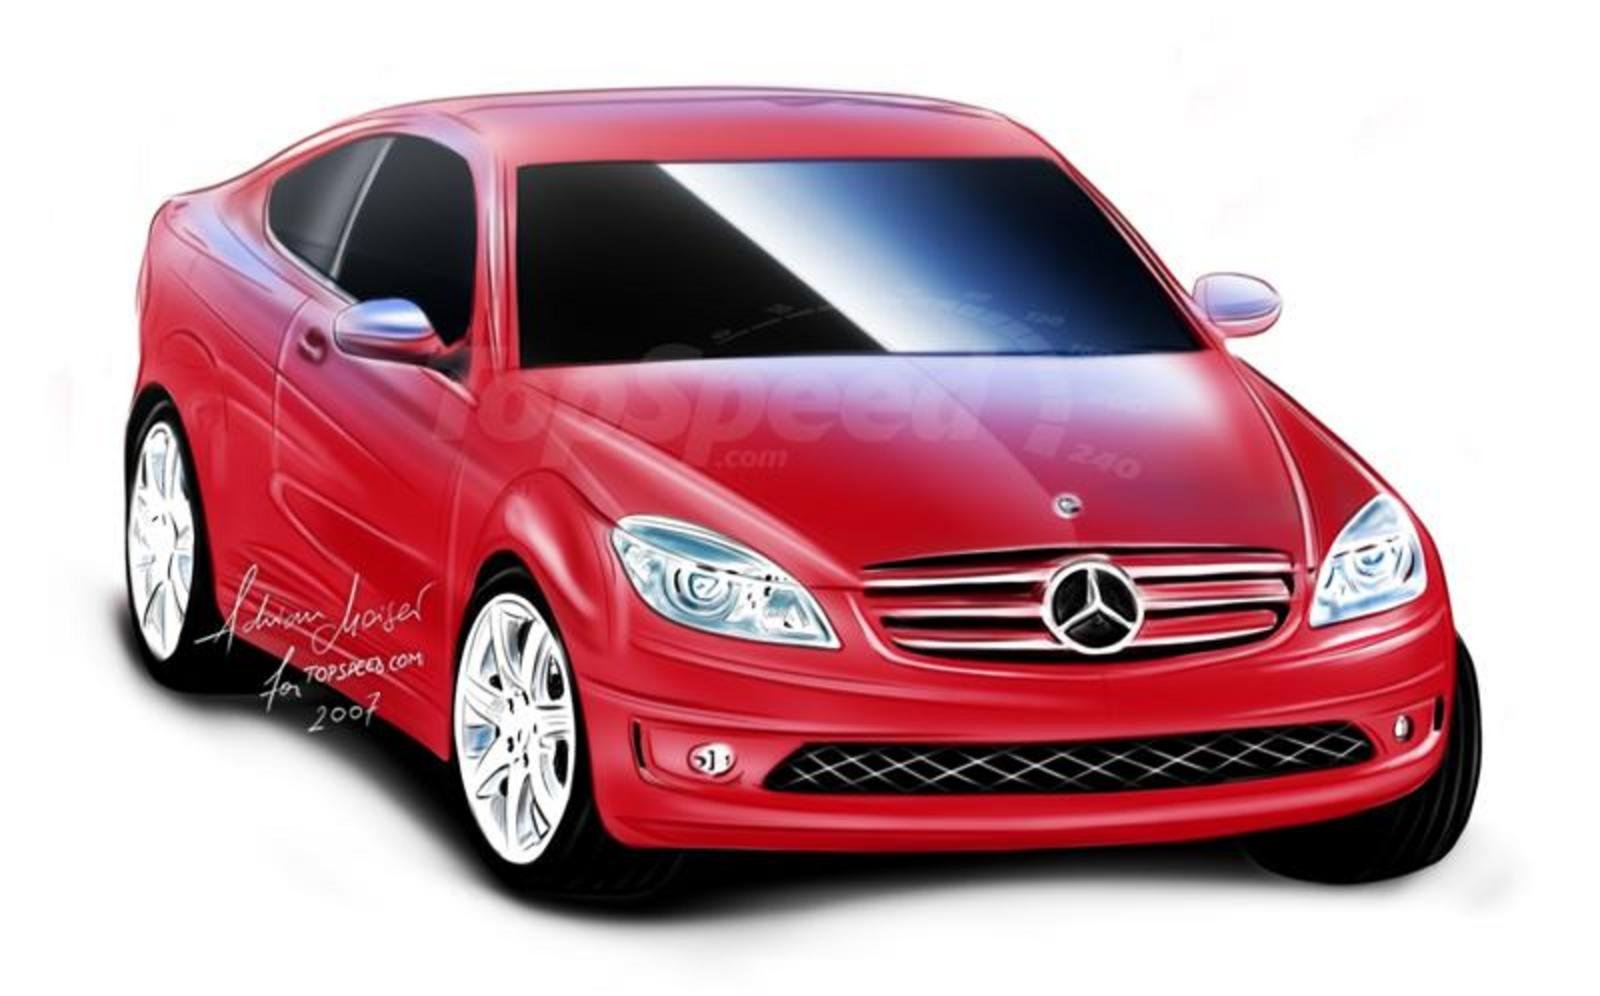 2009 mercedes c class sports coupe review top speed. Black Bedroom Furniture Sets. Home Design Ideas